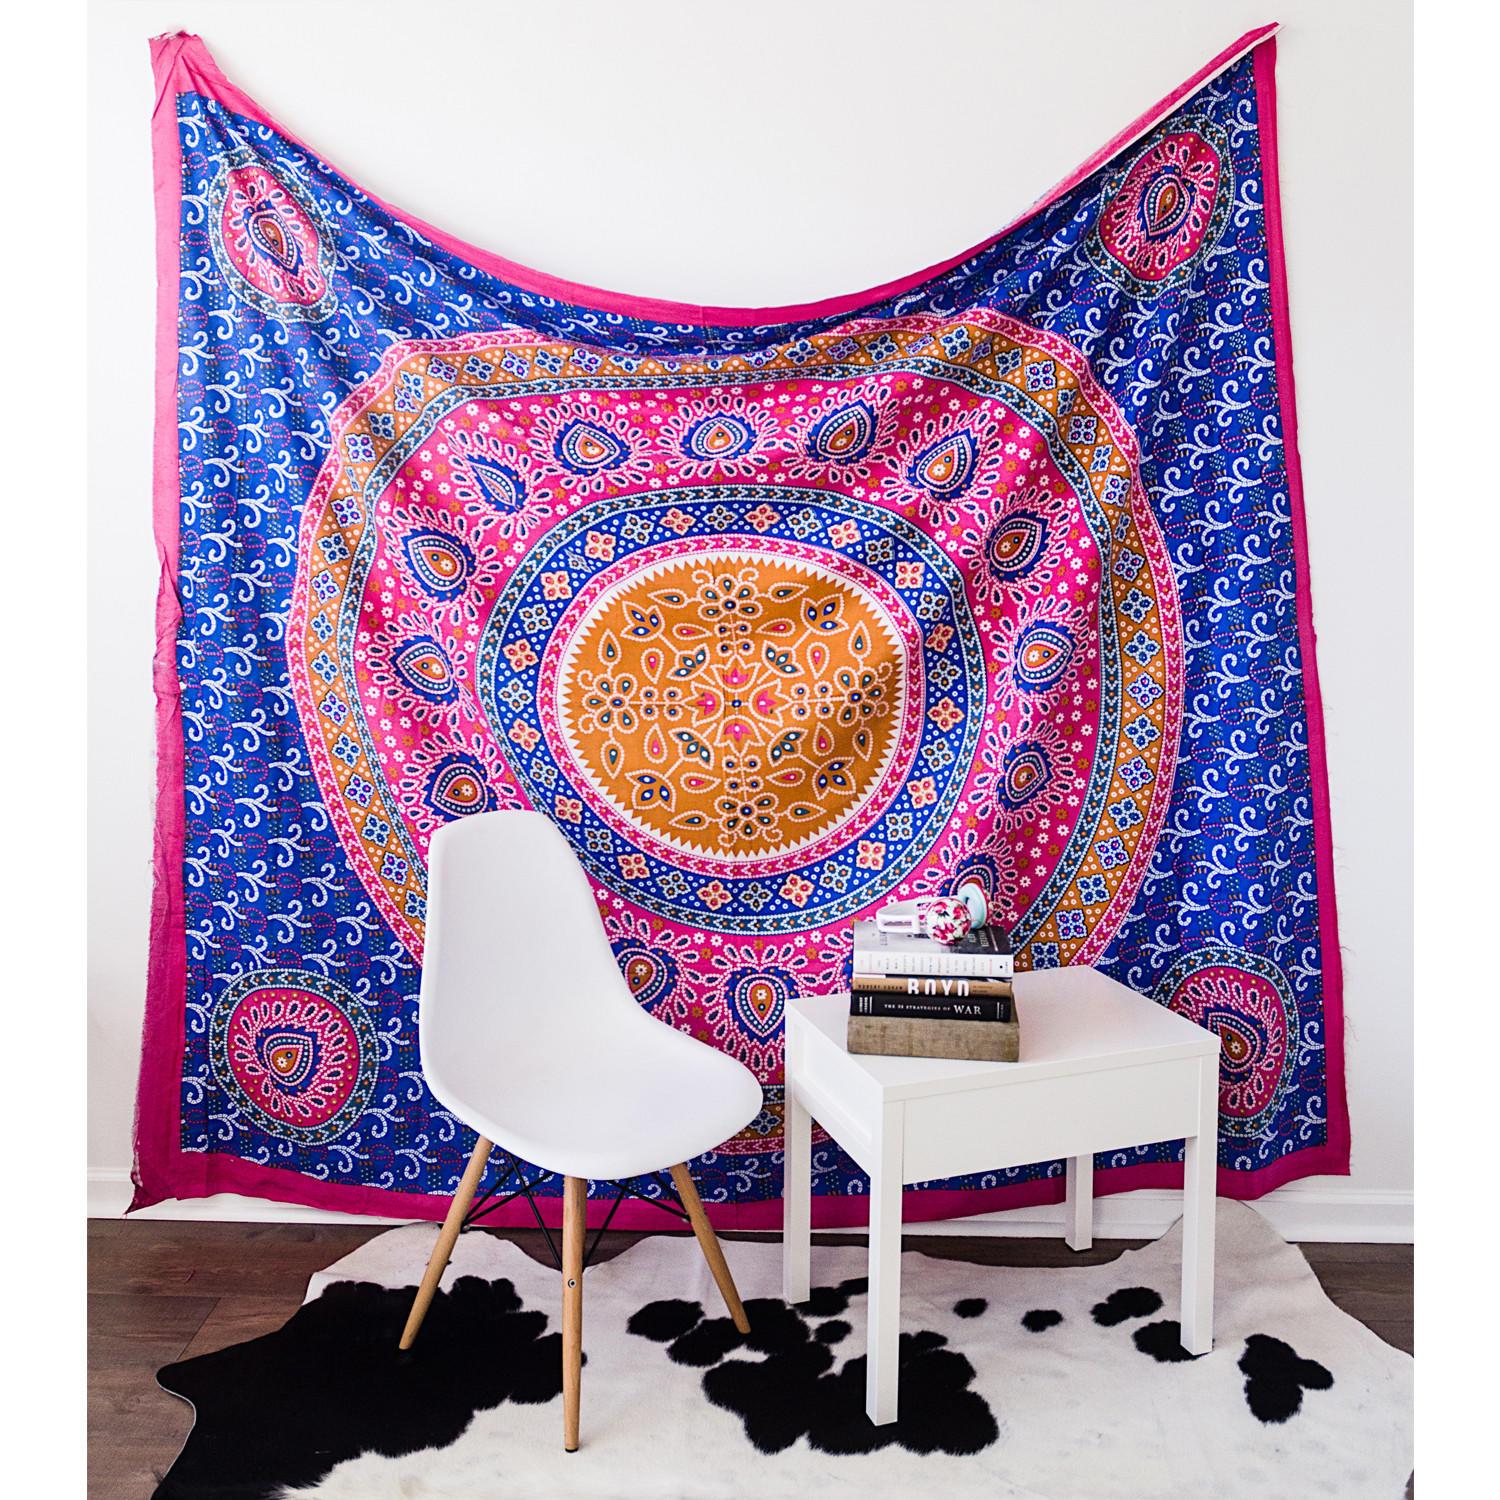 on want medallion the t tapestry site it pin sham find i but duvet can